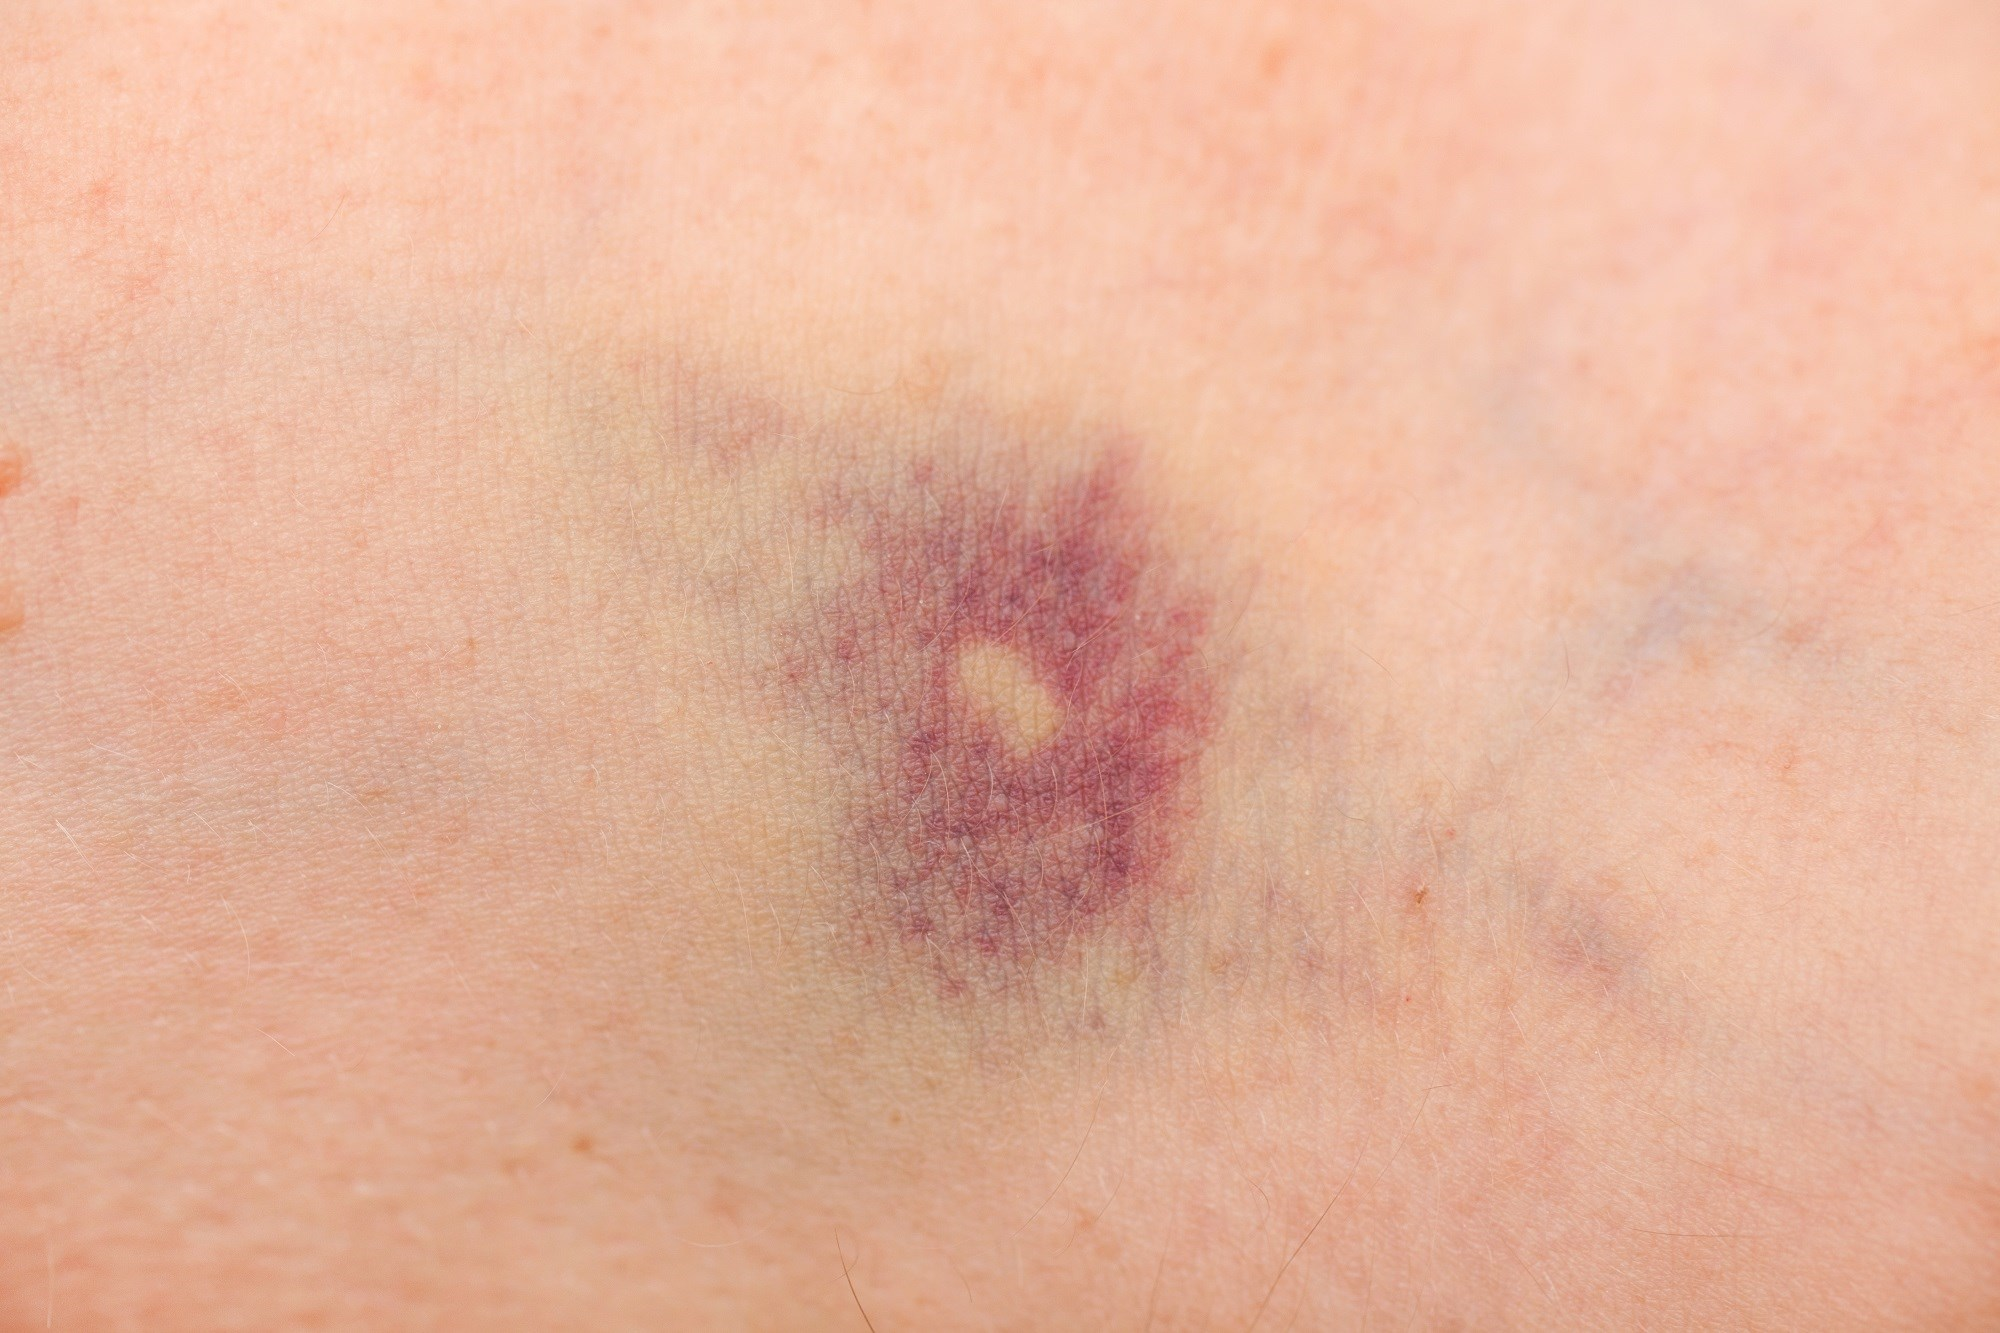 Case Study: Abdominal Pain, Malaise, and a Bruise on the Leg